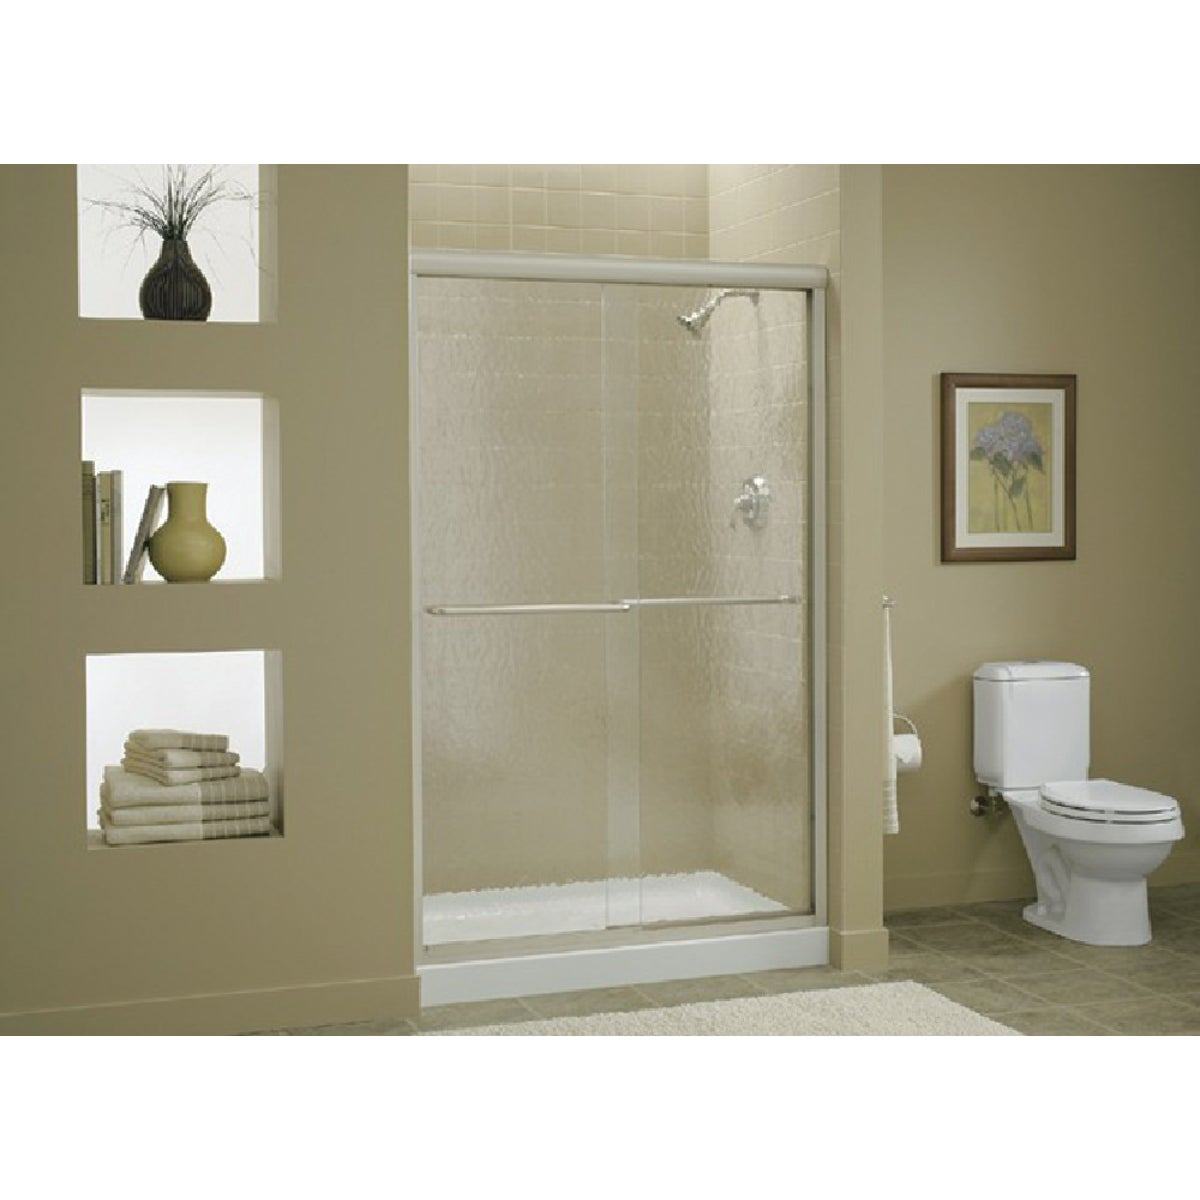 NICKEL BY-PASS TUB DOOR - 5475-48N-G05 by Sterling Doors